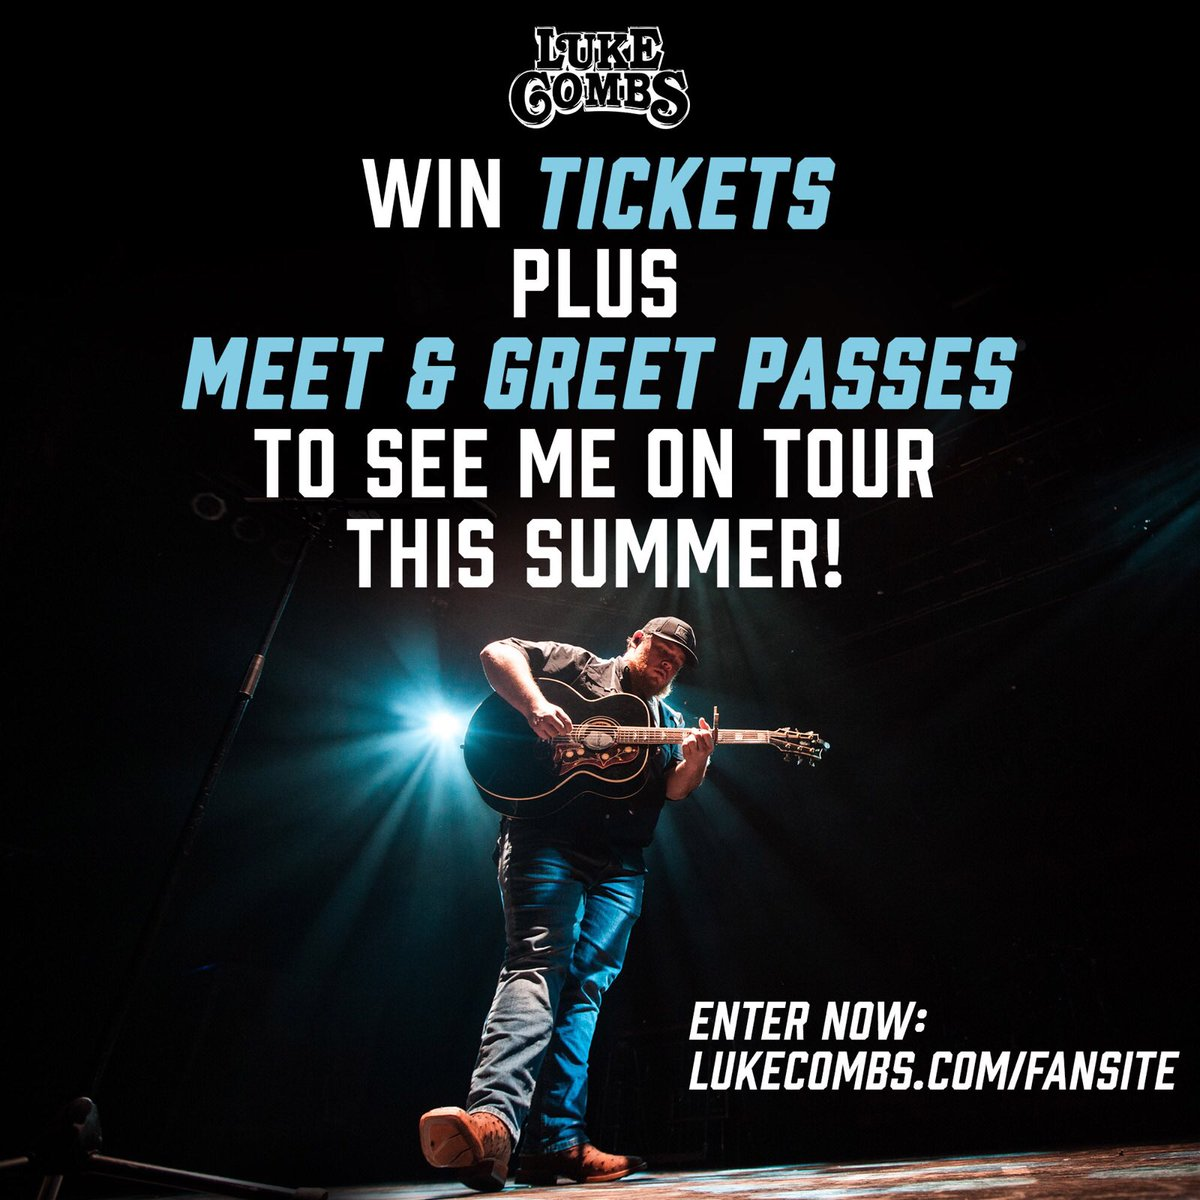 Luke combs on twitter wanna see me on tour with jason aldean meet greet passes for each show to one lucky winner reply with who youll bring with you if you win enter here httpslukecombsfansite m4hsunfo